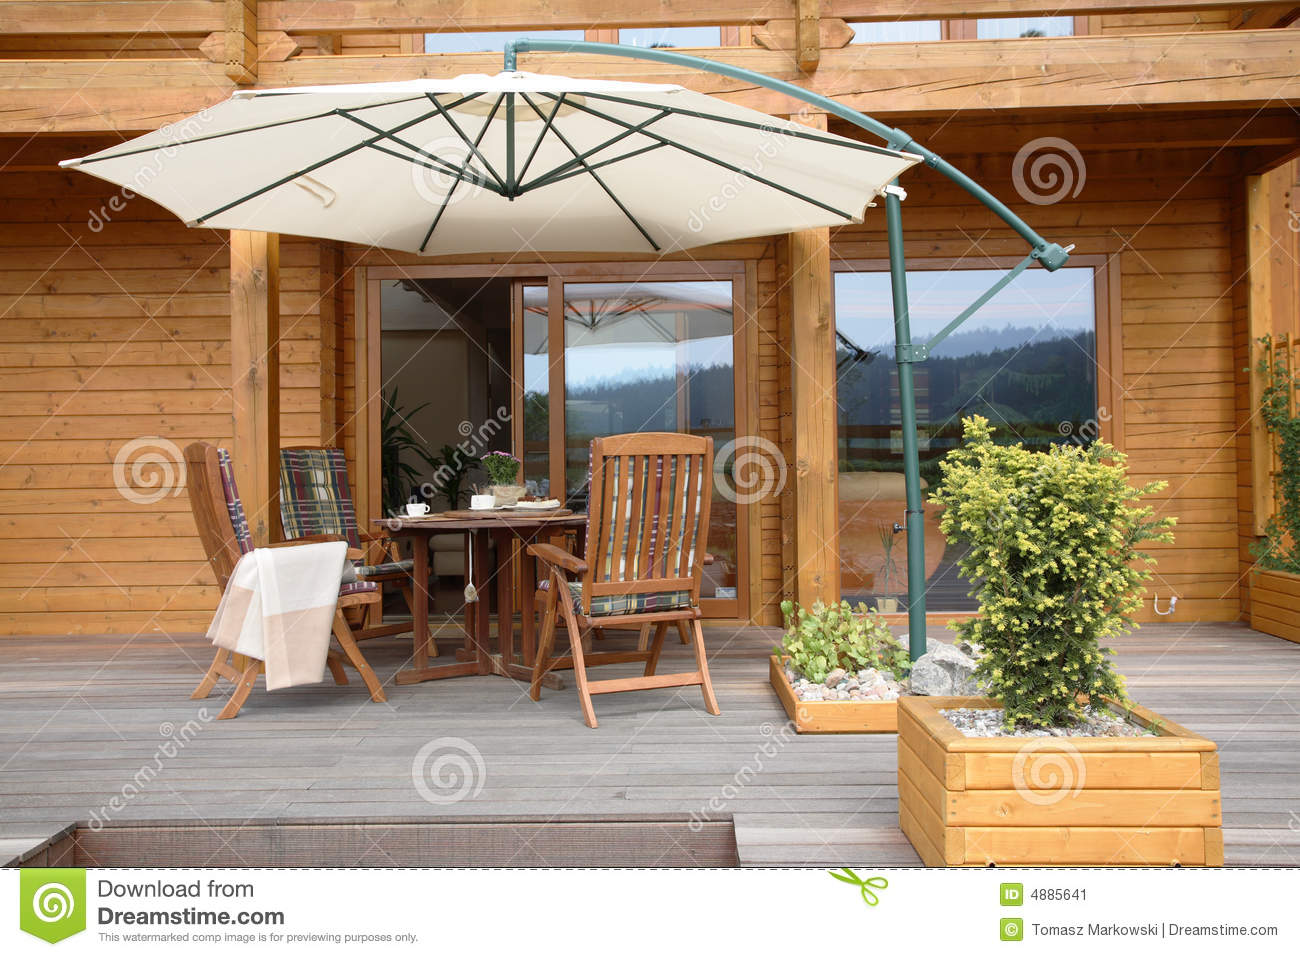 Patio In Legno Modern Wooden Patio Stock Image Image Of Building Planter 4885641